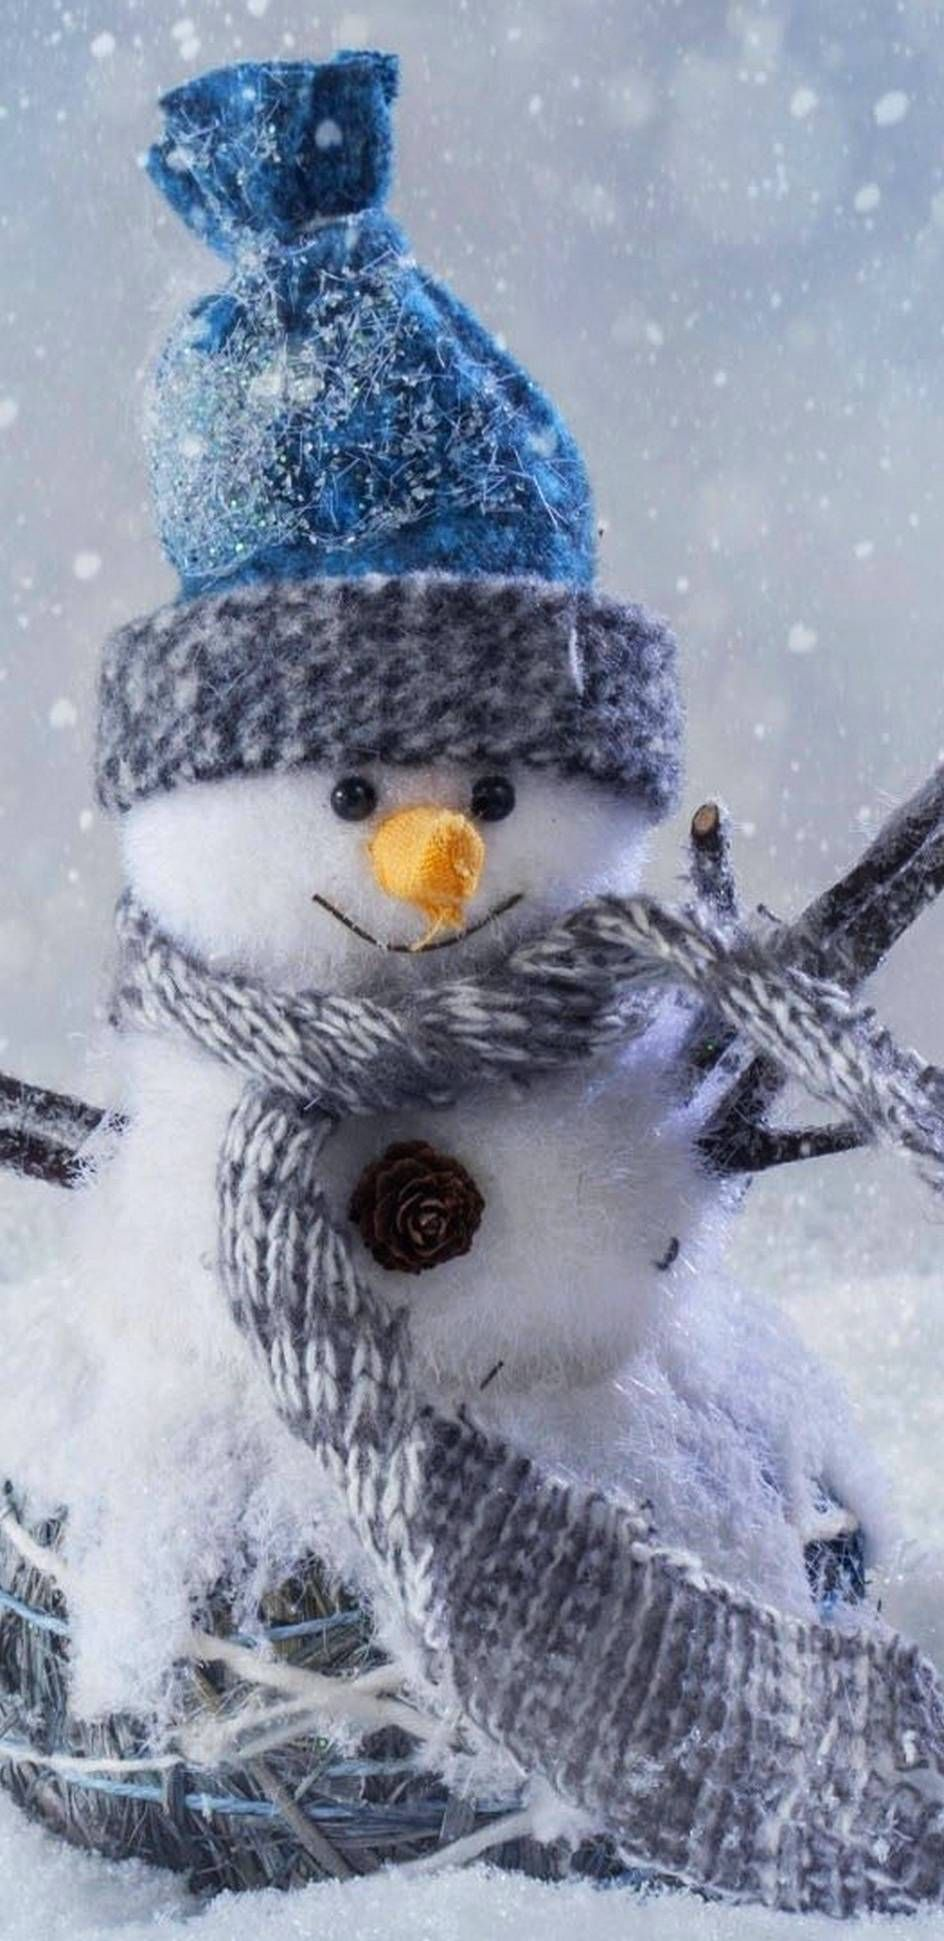 Pin by Tena Groome on Winter scenery in 2020 Snowman